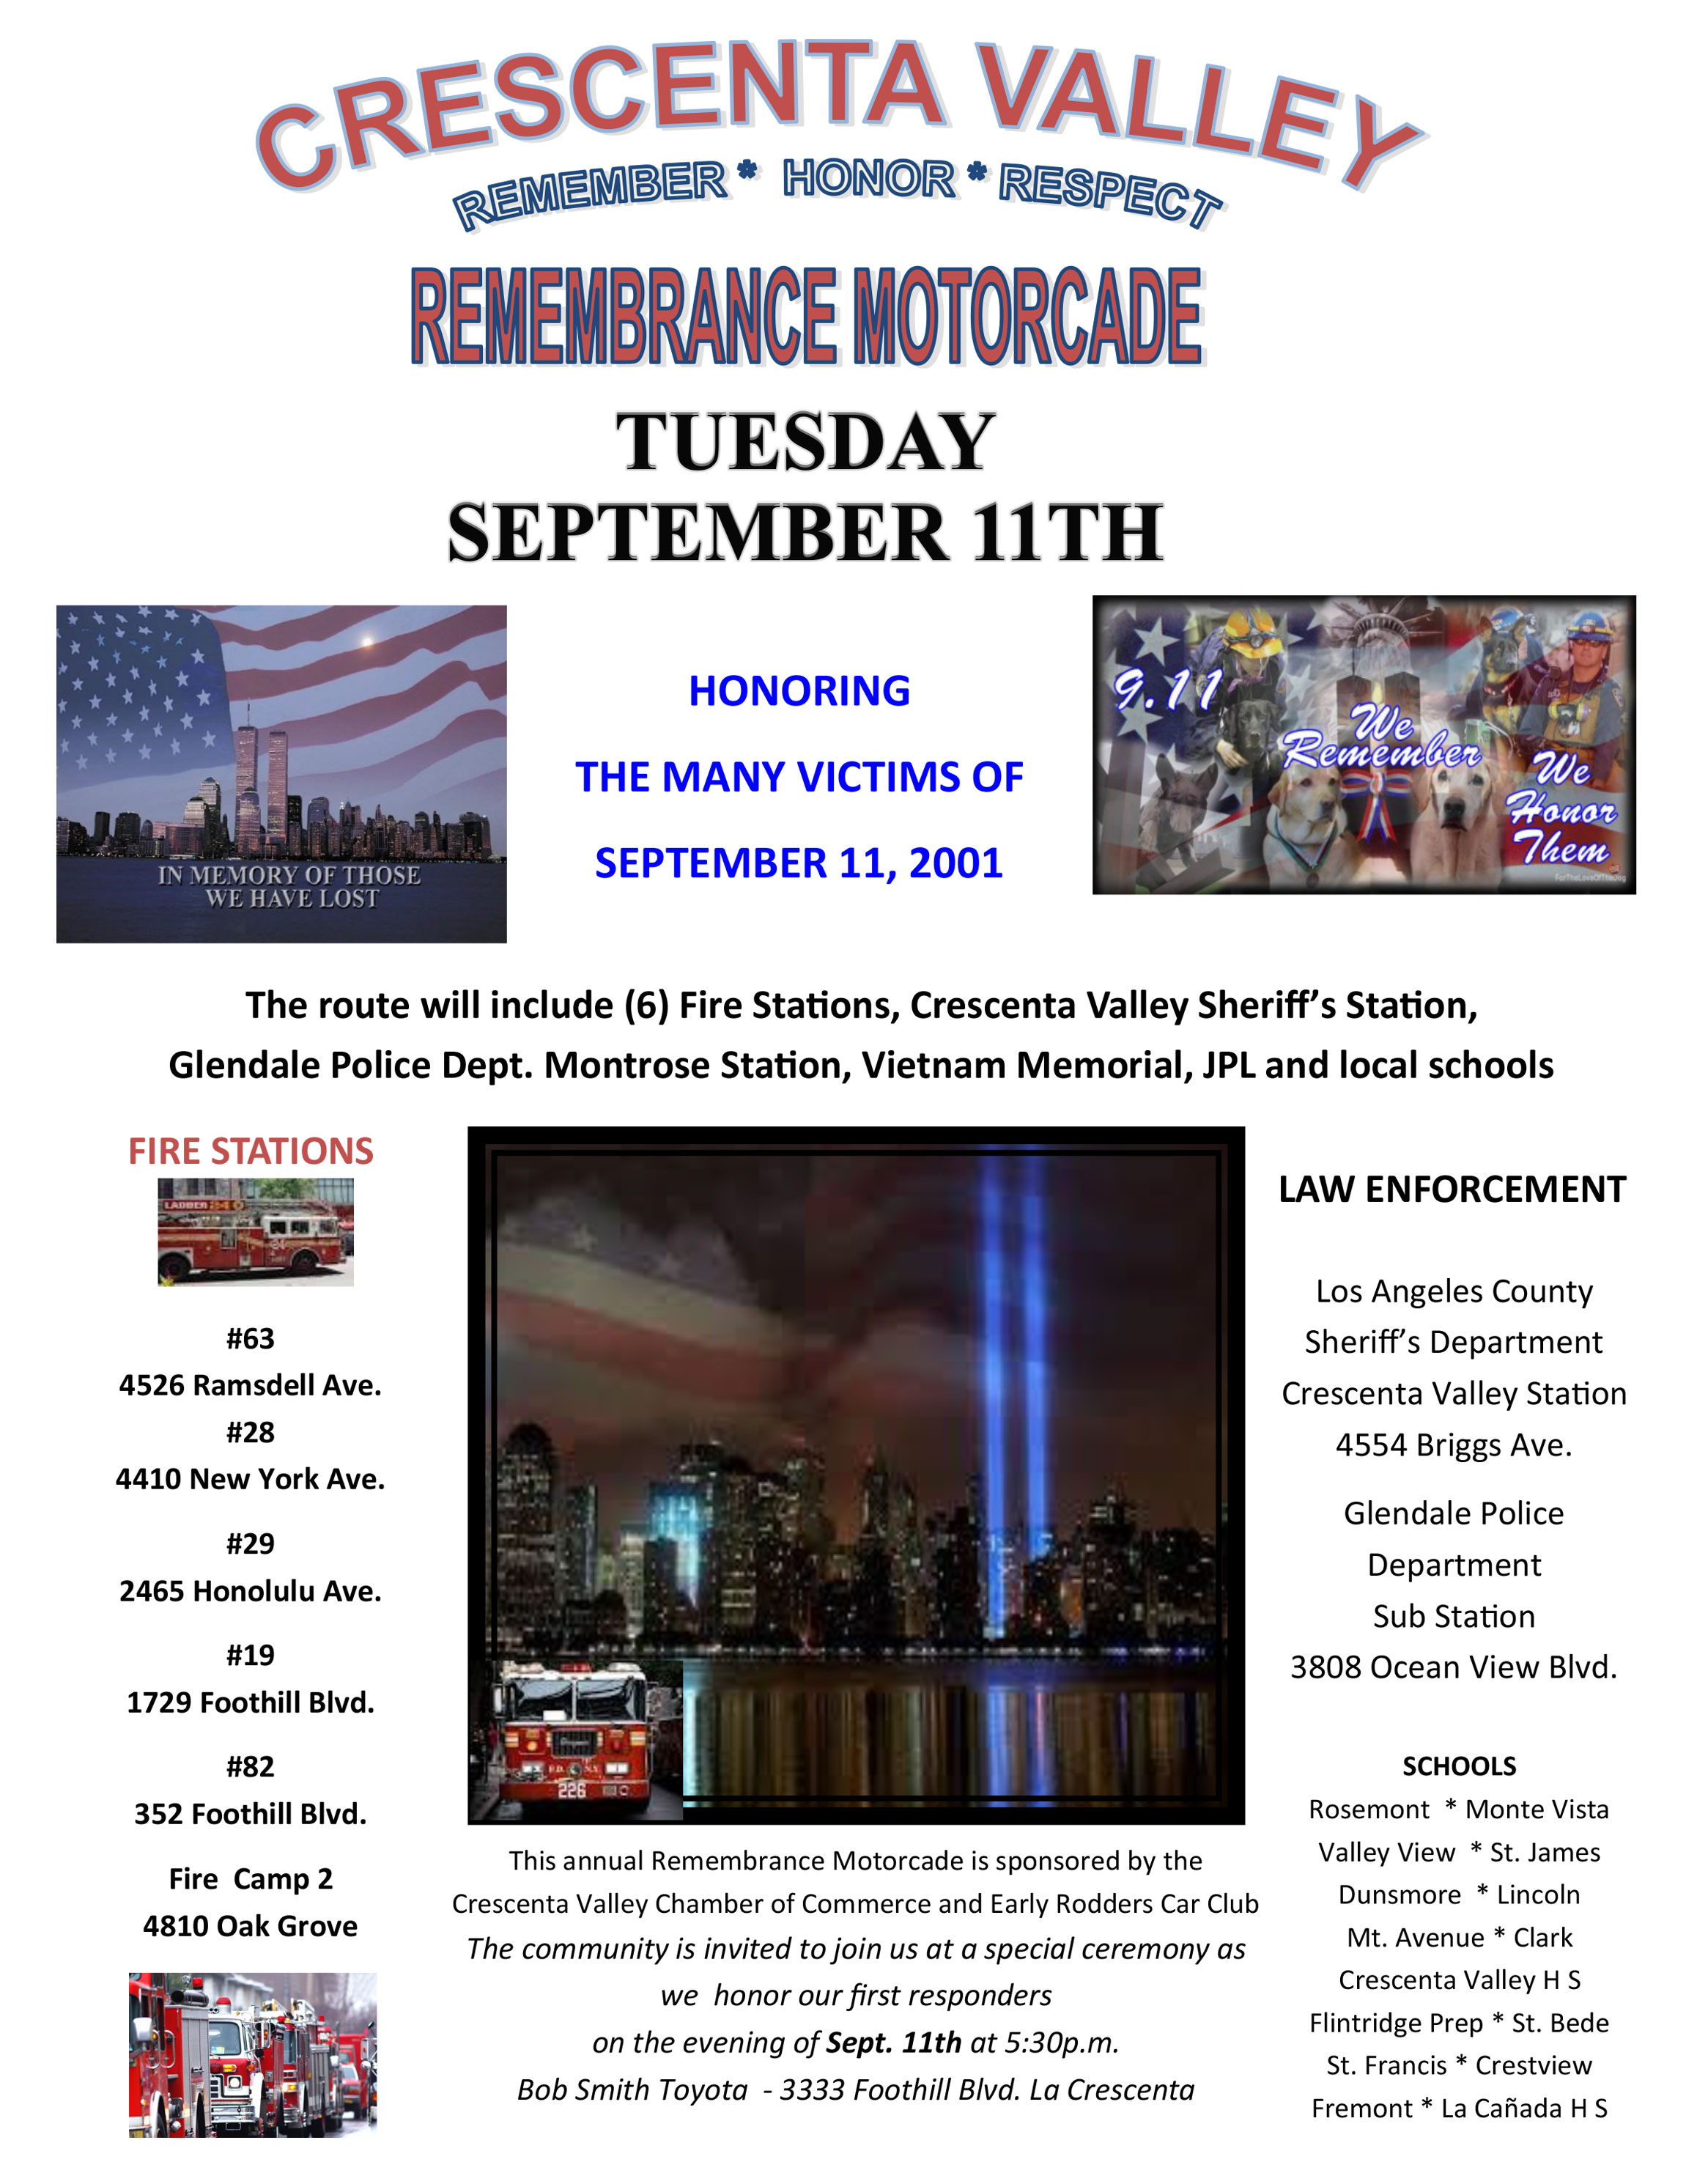 Crescenta Valley Remembrance Motorcade